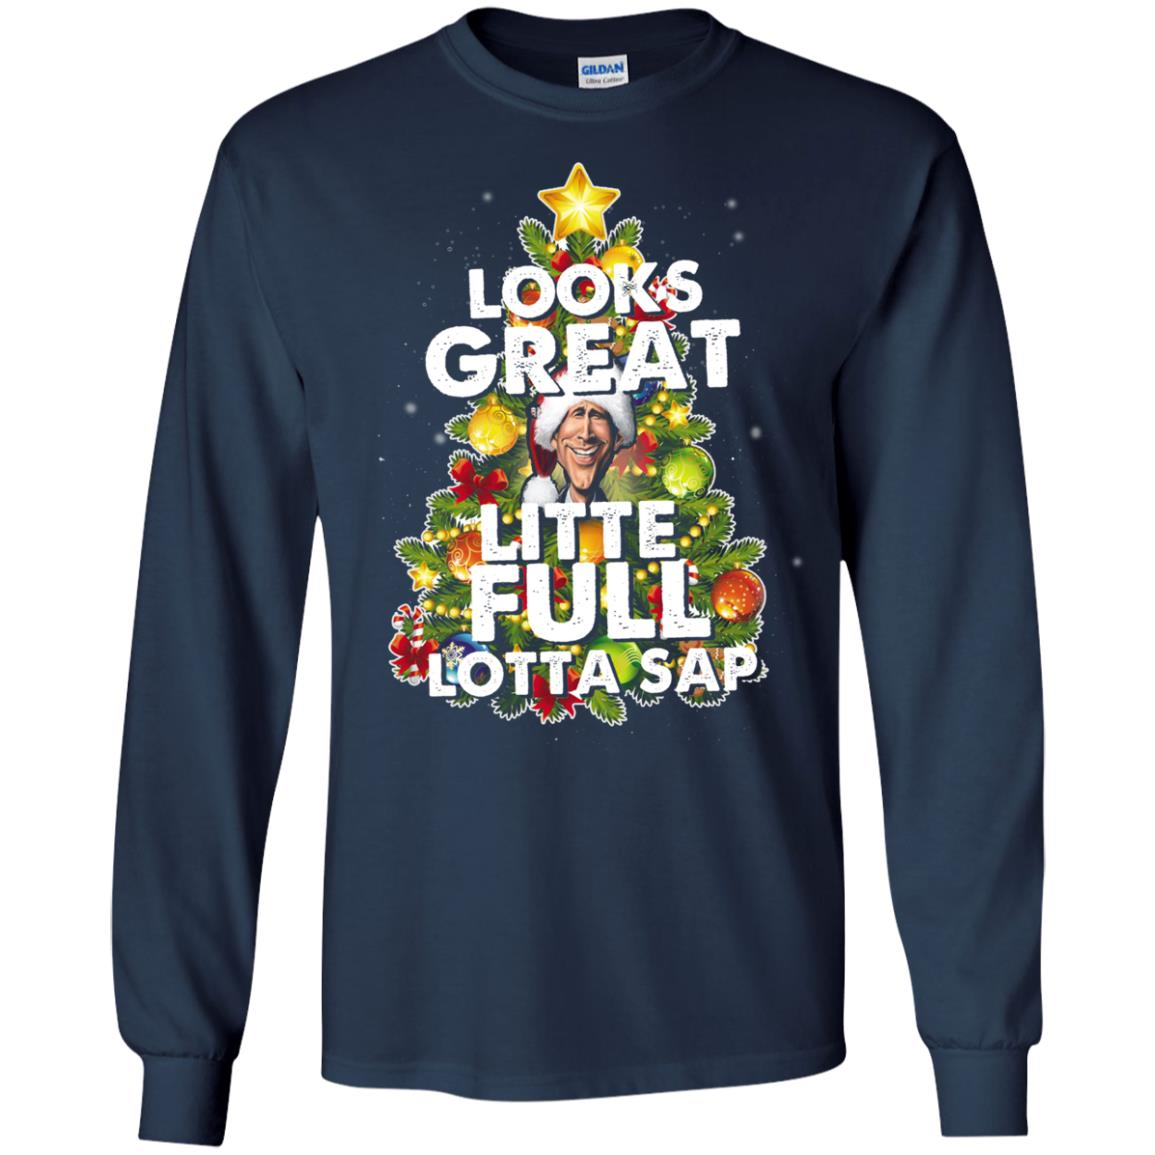 image 2484 - Looks great little full lotta sap ugly Christmas sweater, hoodie